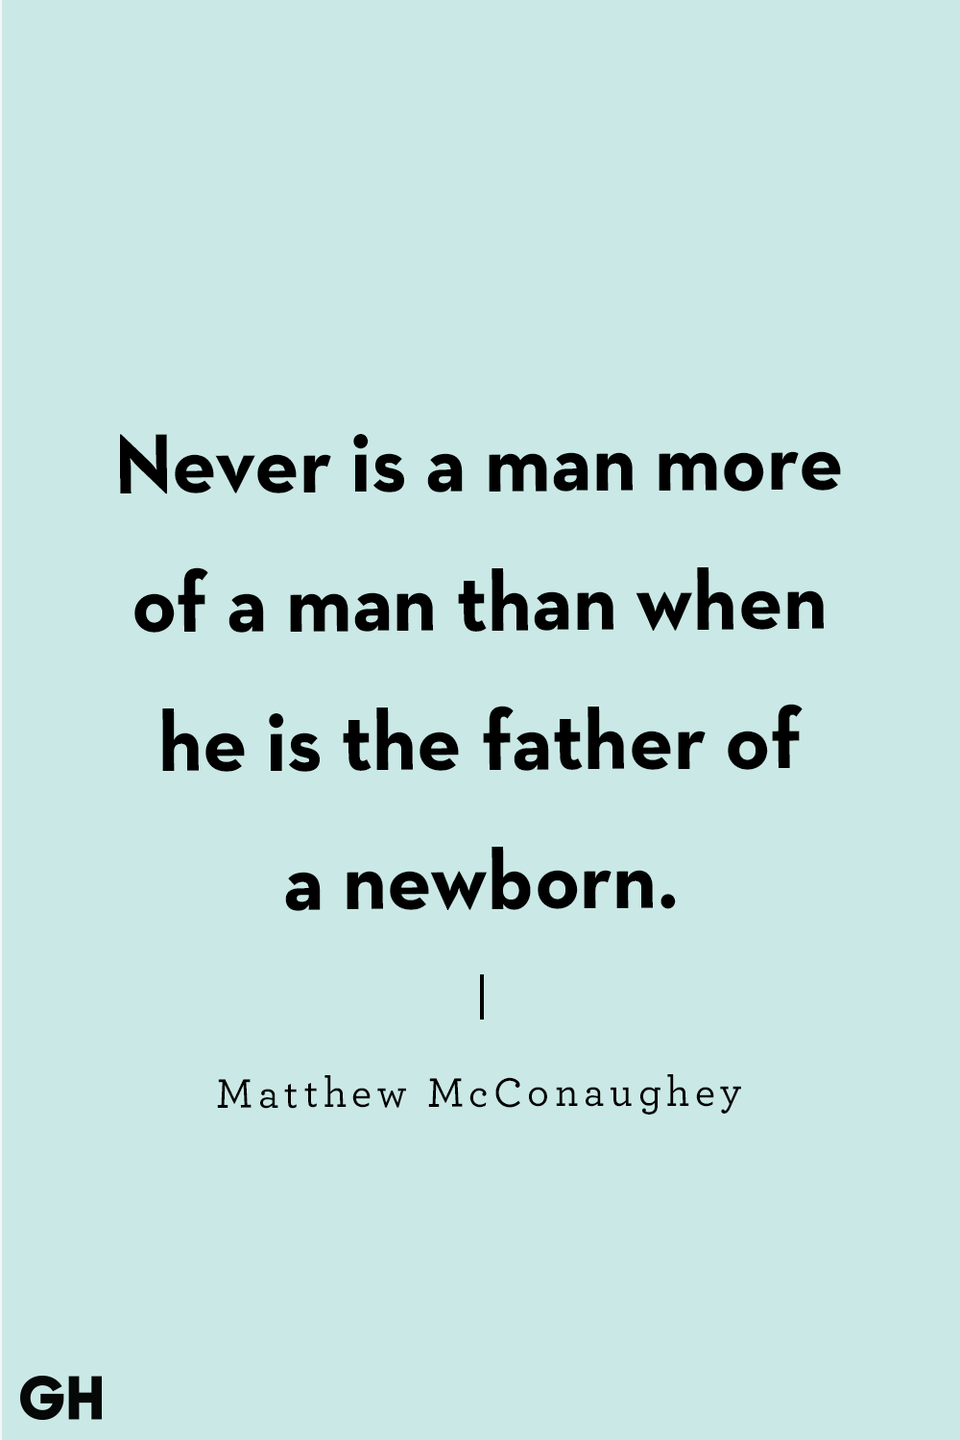 <p>Never is a man more of a man than when he is the father of a newborn.</p>